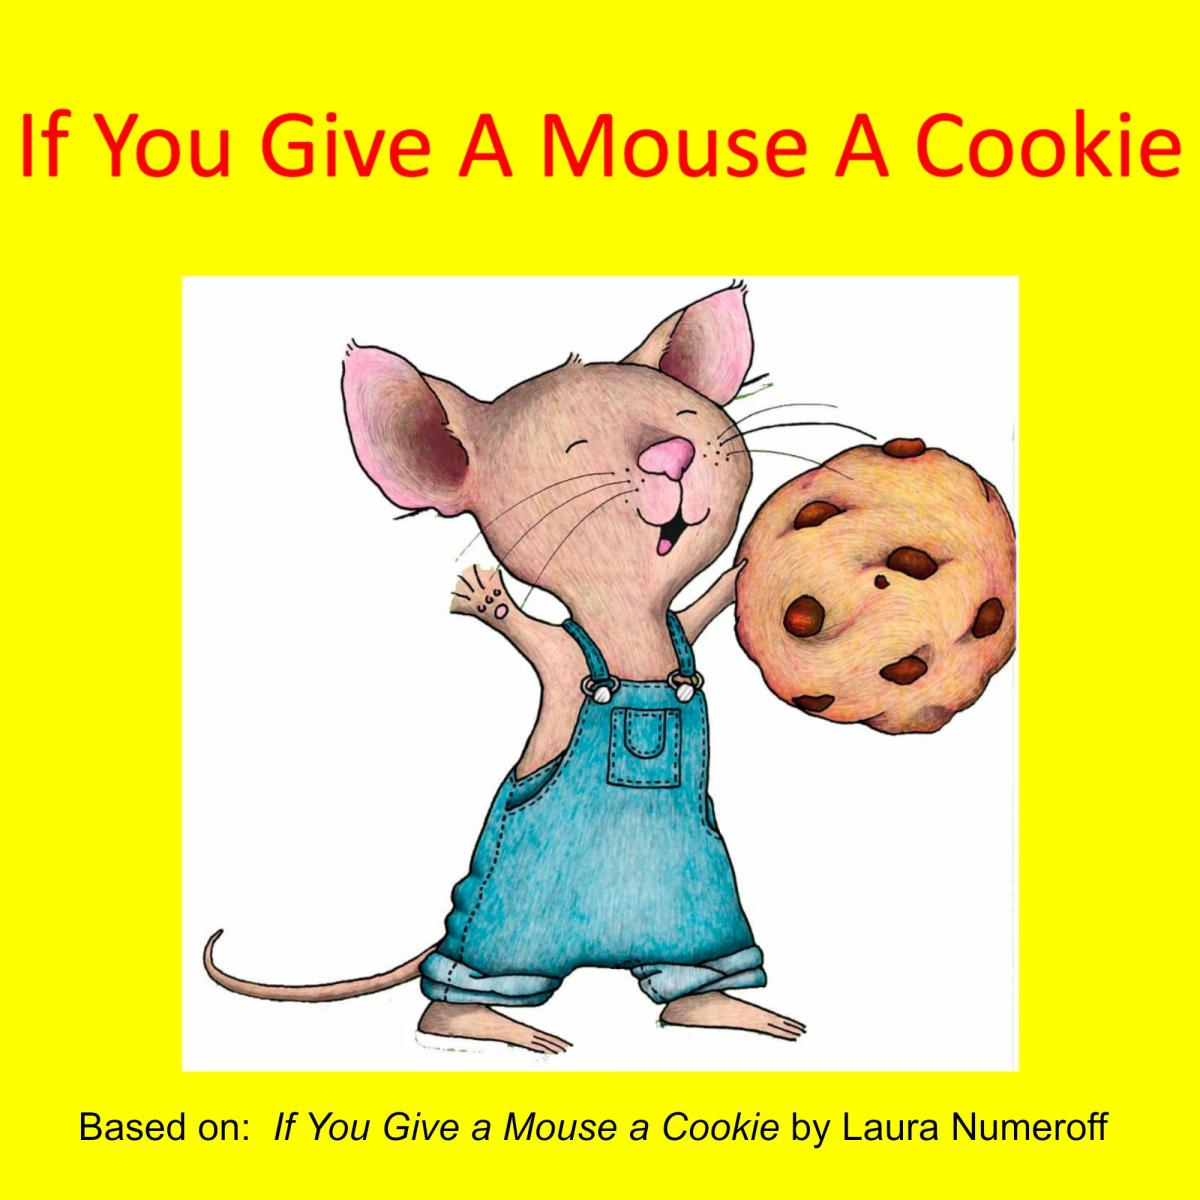 Ideas For Sharing  If You Give A Mouse A Cookie  With Children Who